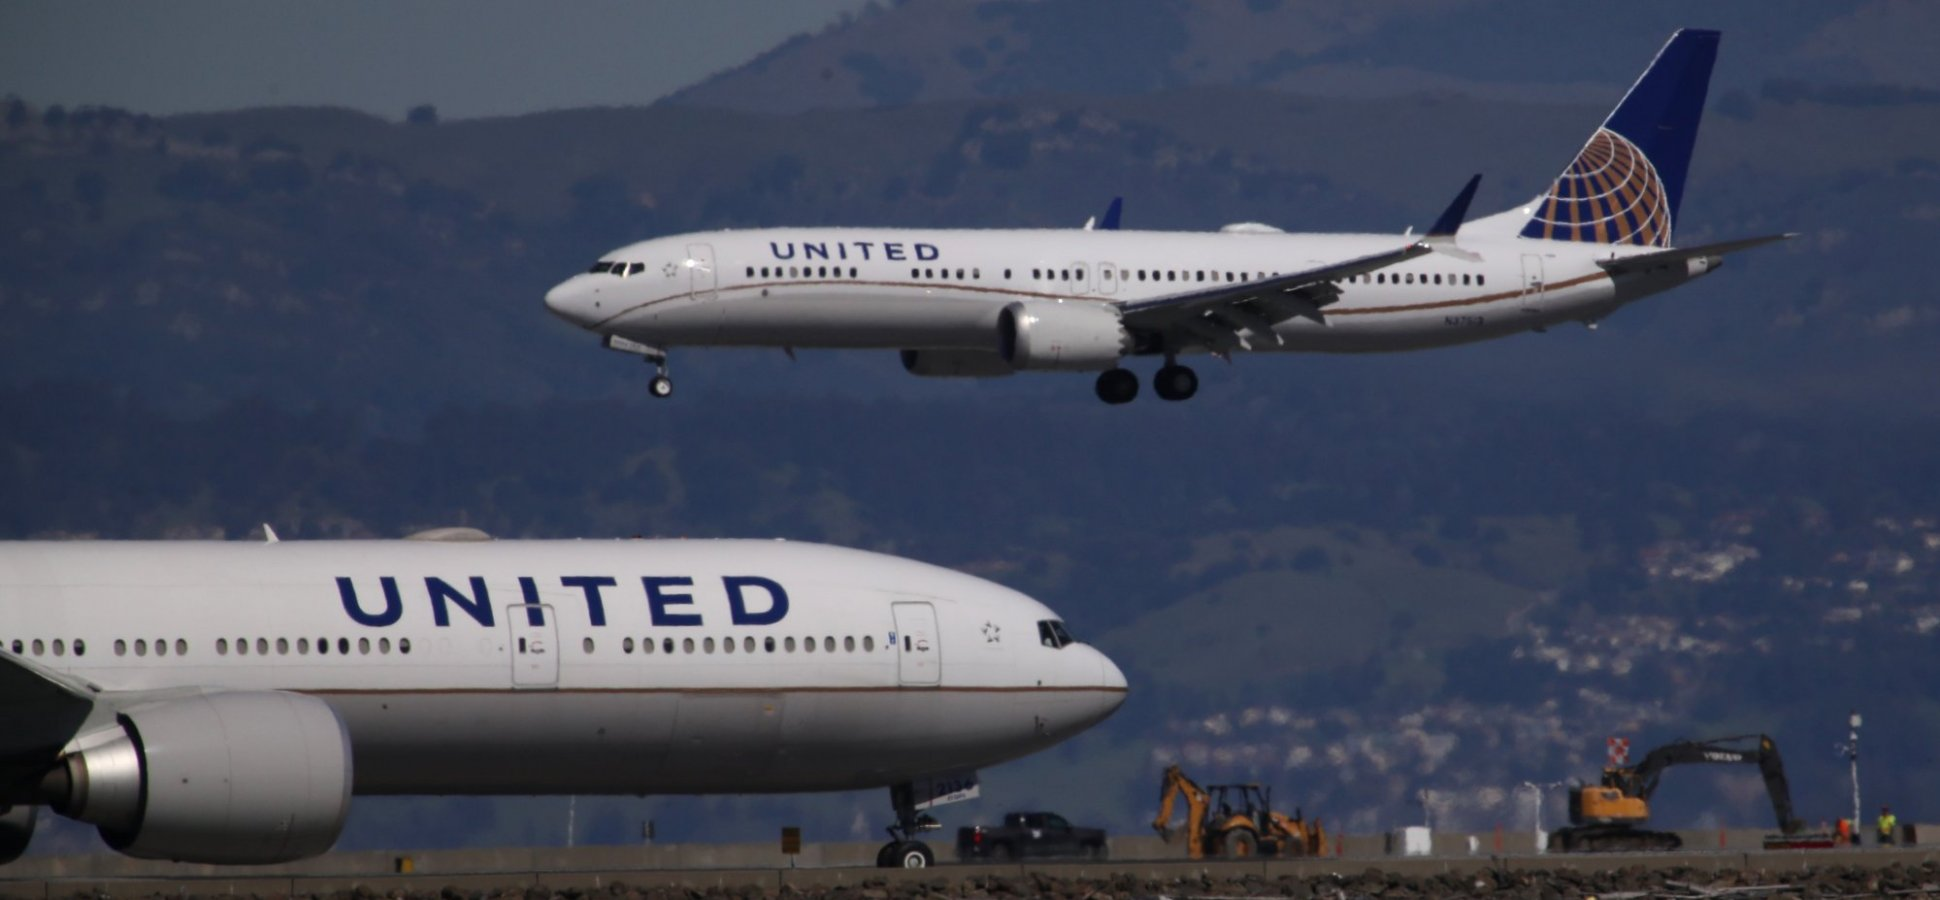 With Just 22 Words, This United Airlines Flight Attendant Brilliantly Explained What's at Stake With the Boeing 737 MAX